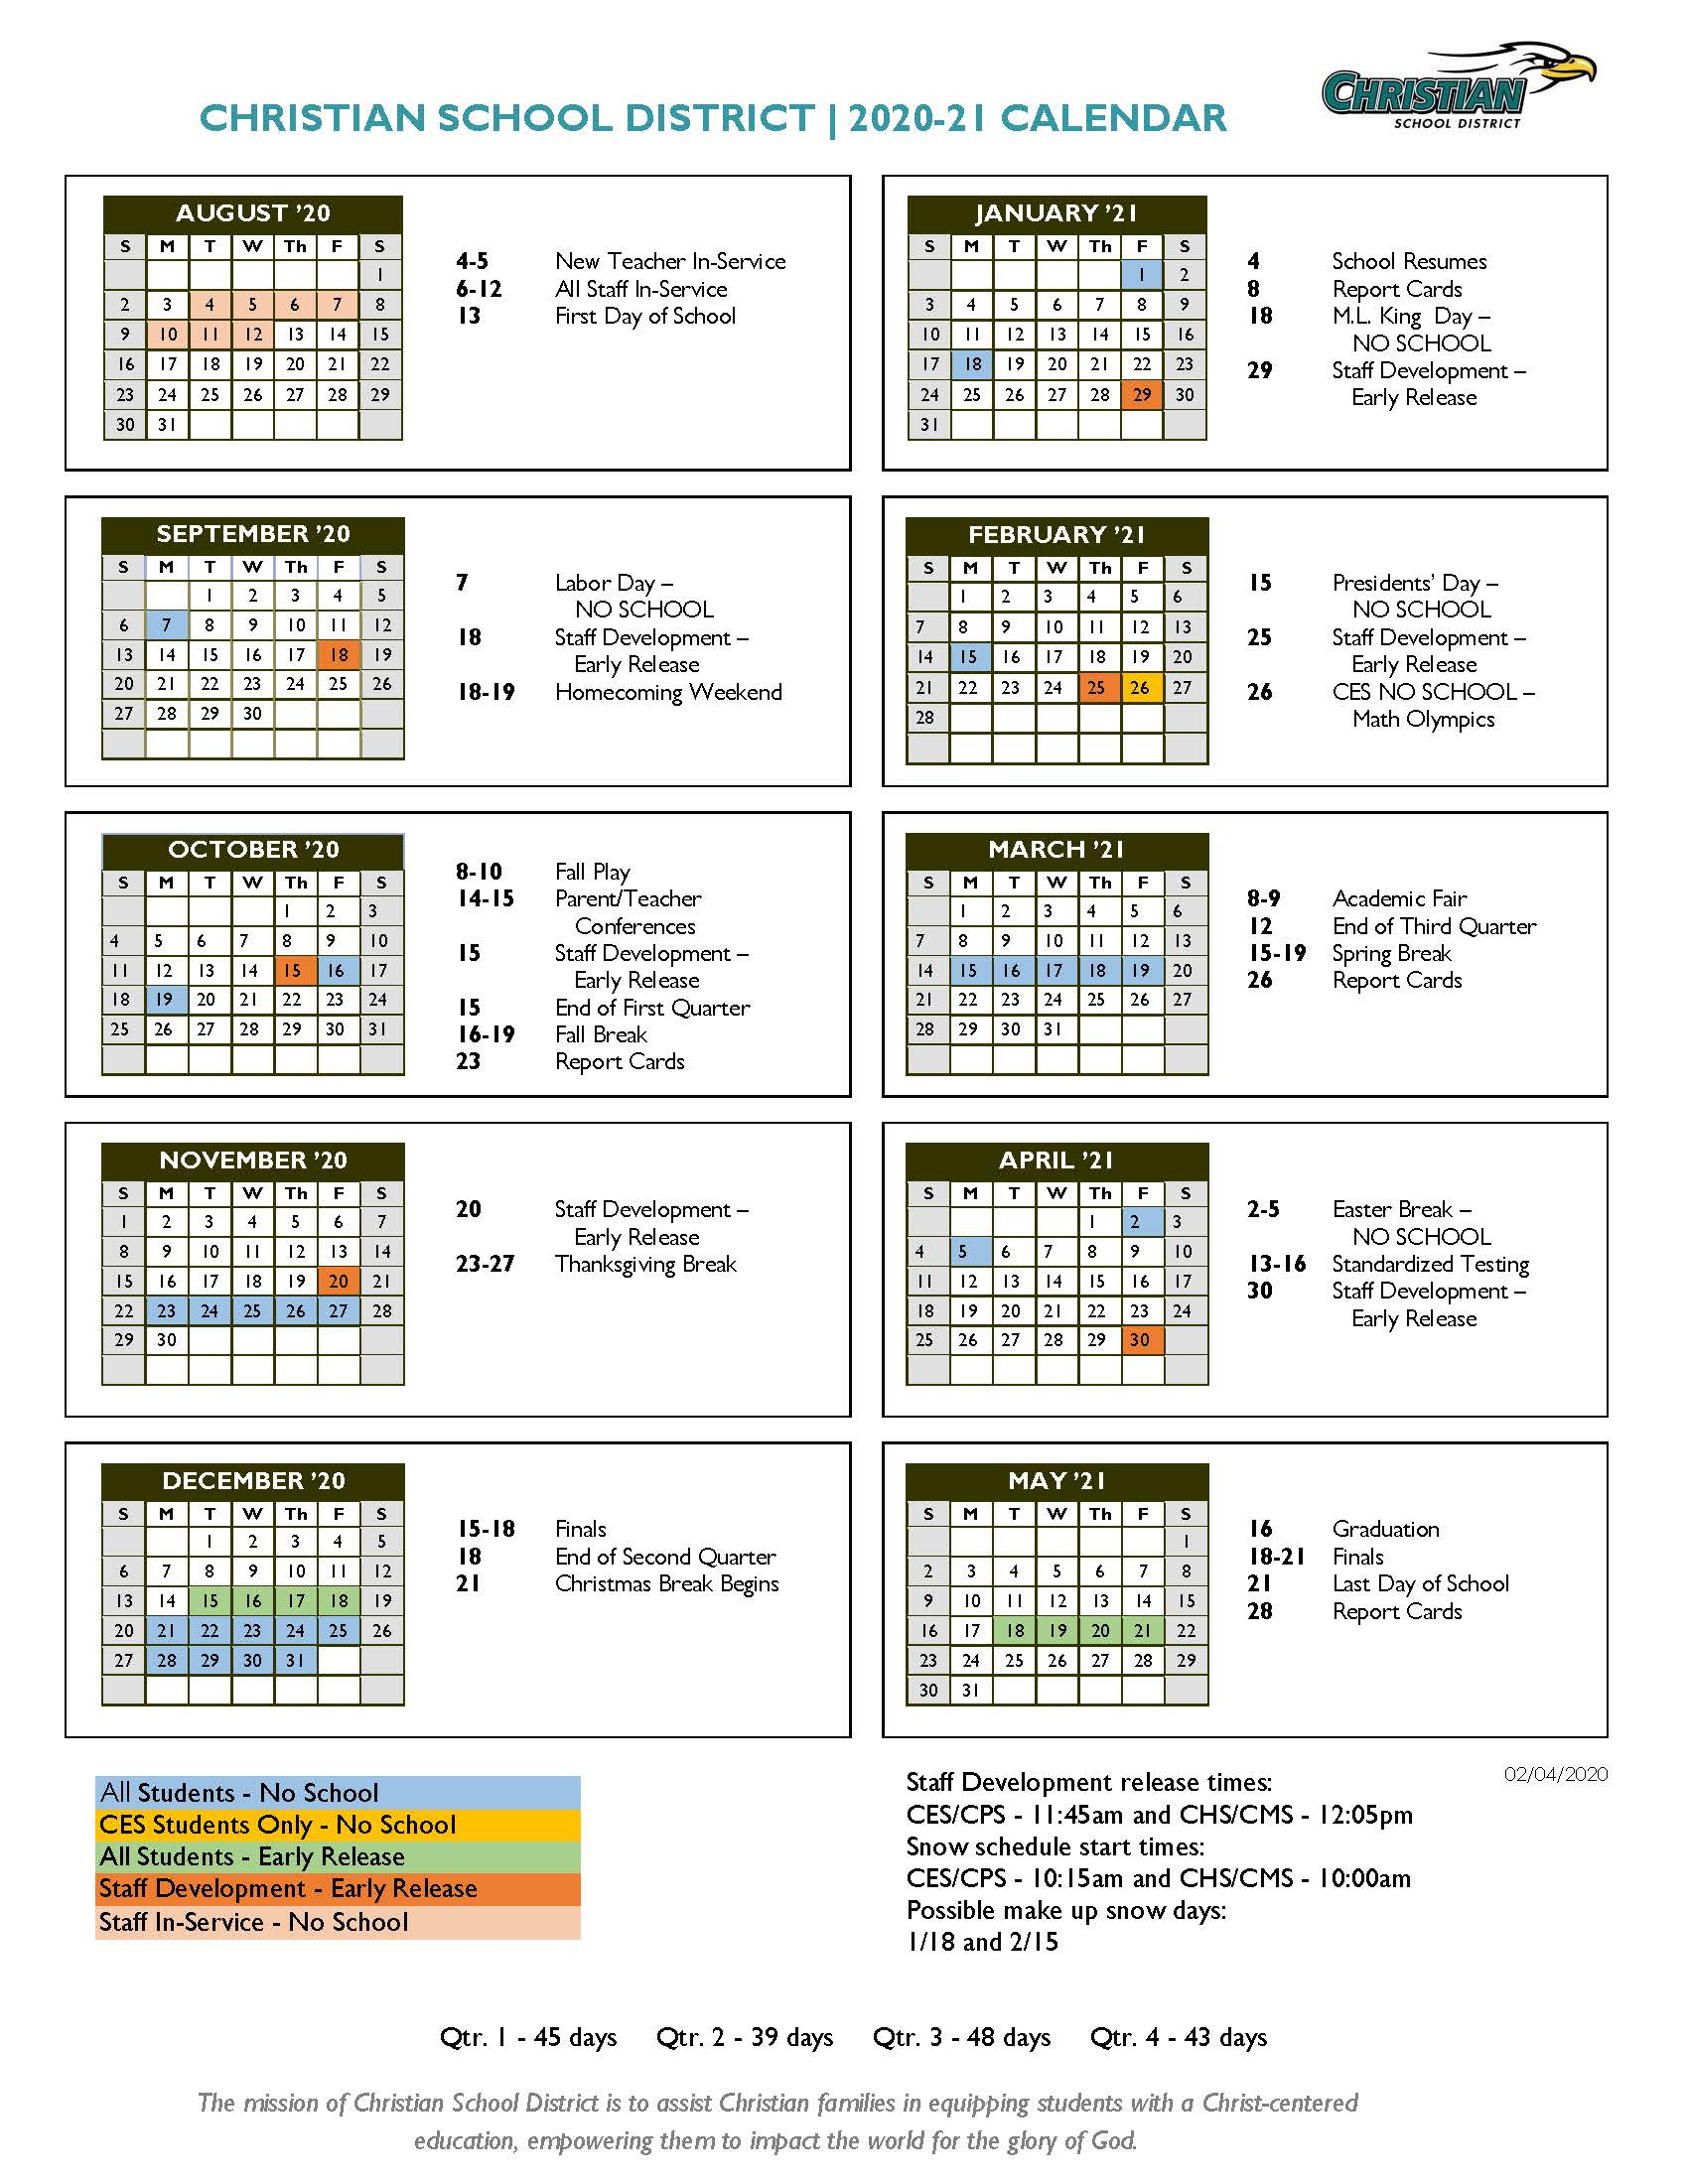 Annual Academic Calendar - Christian School District Pertaining To Saint Charles Communty College Calendar 2020